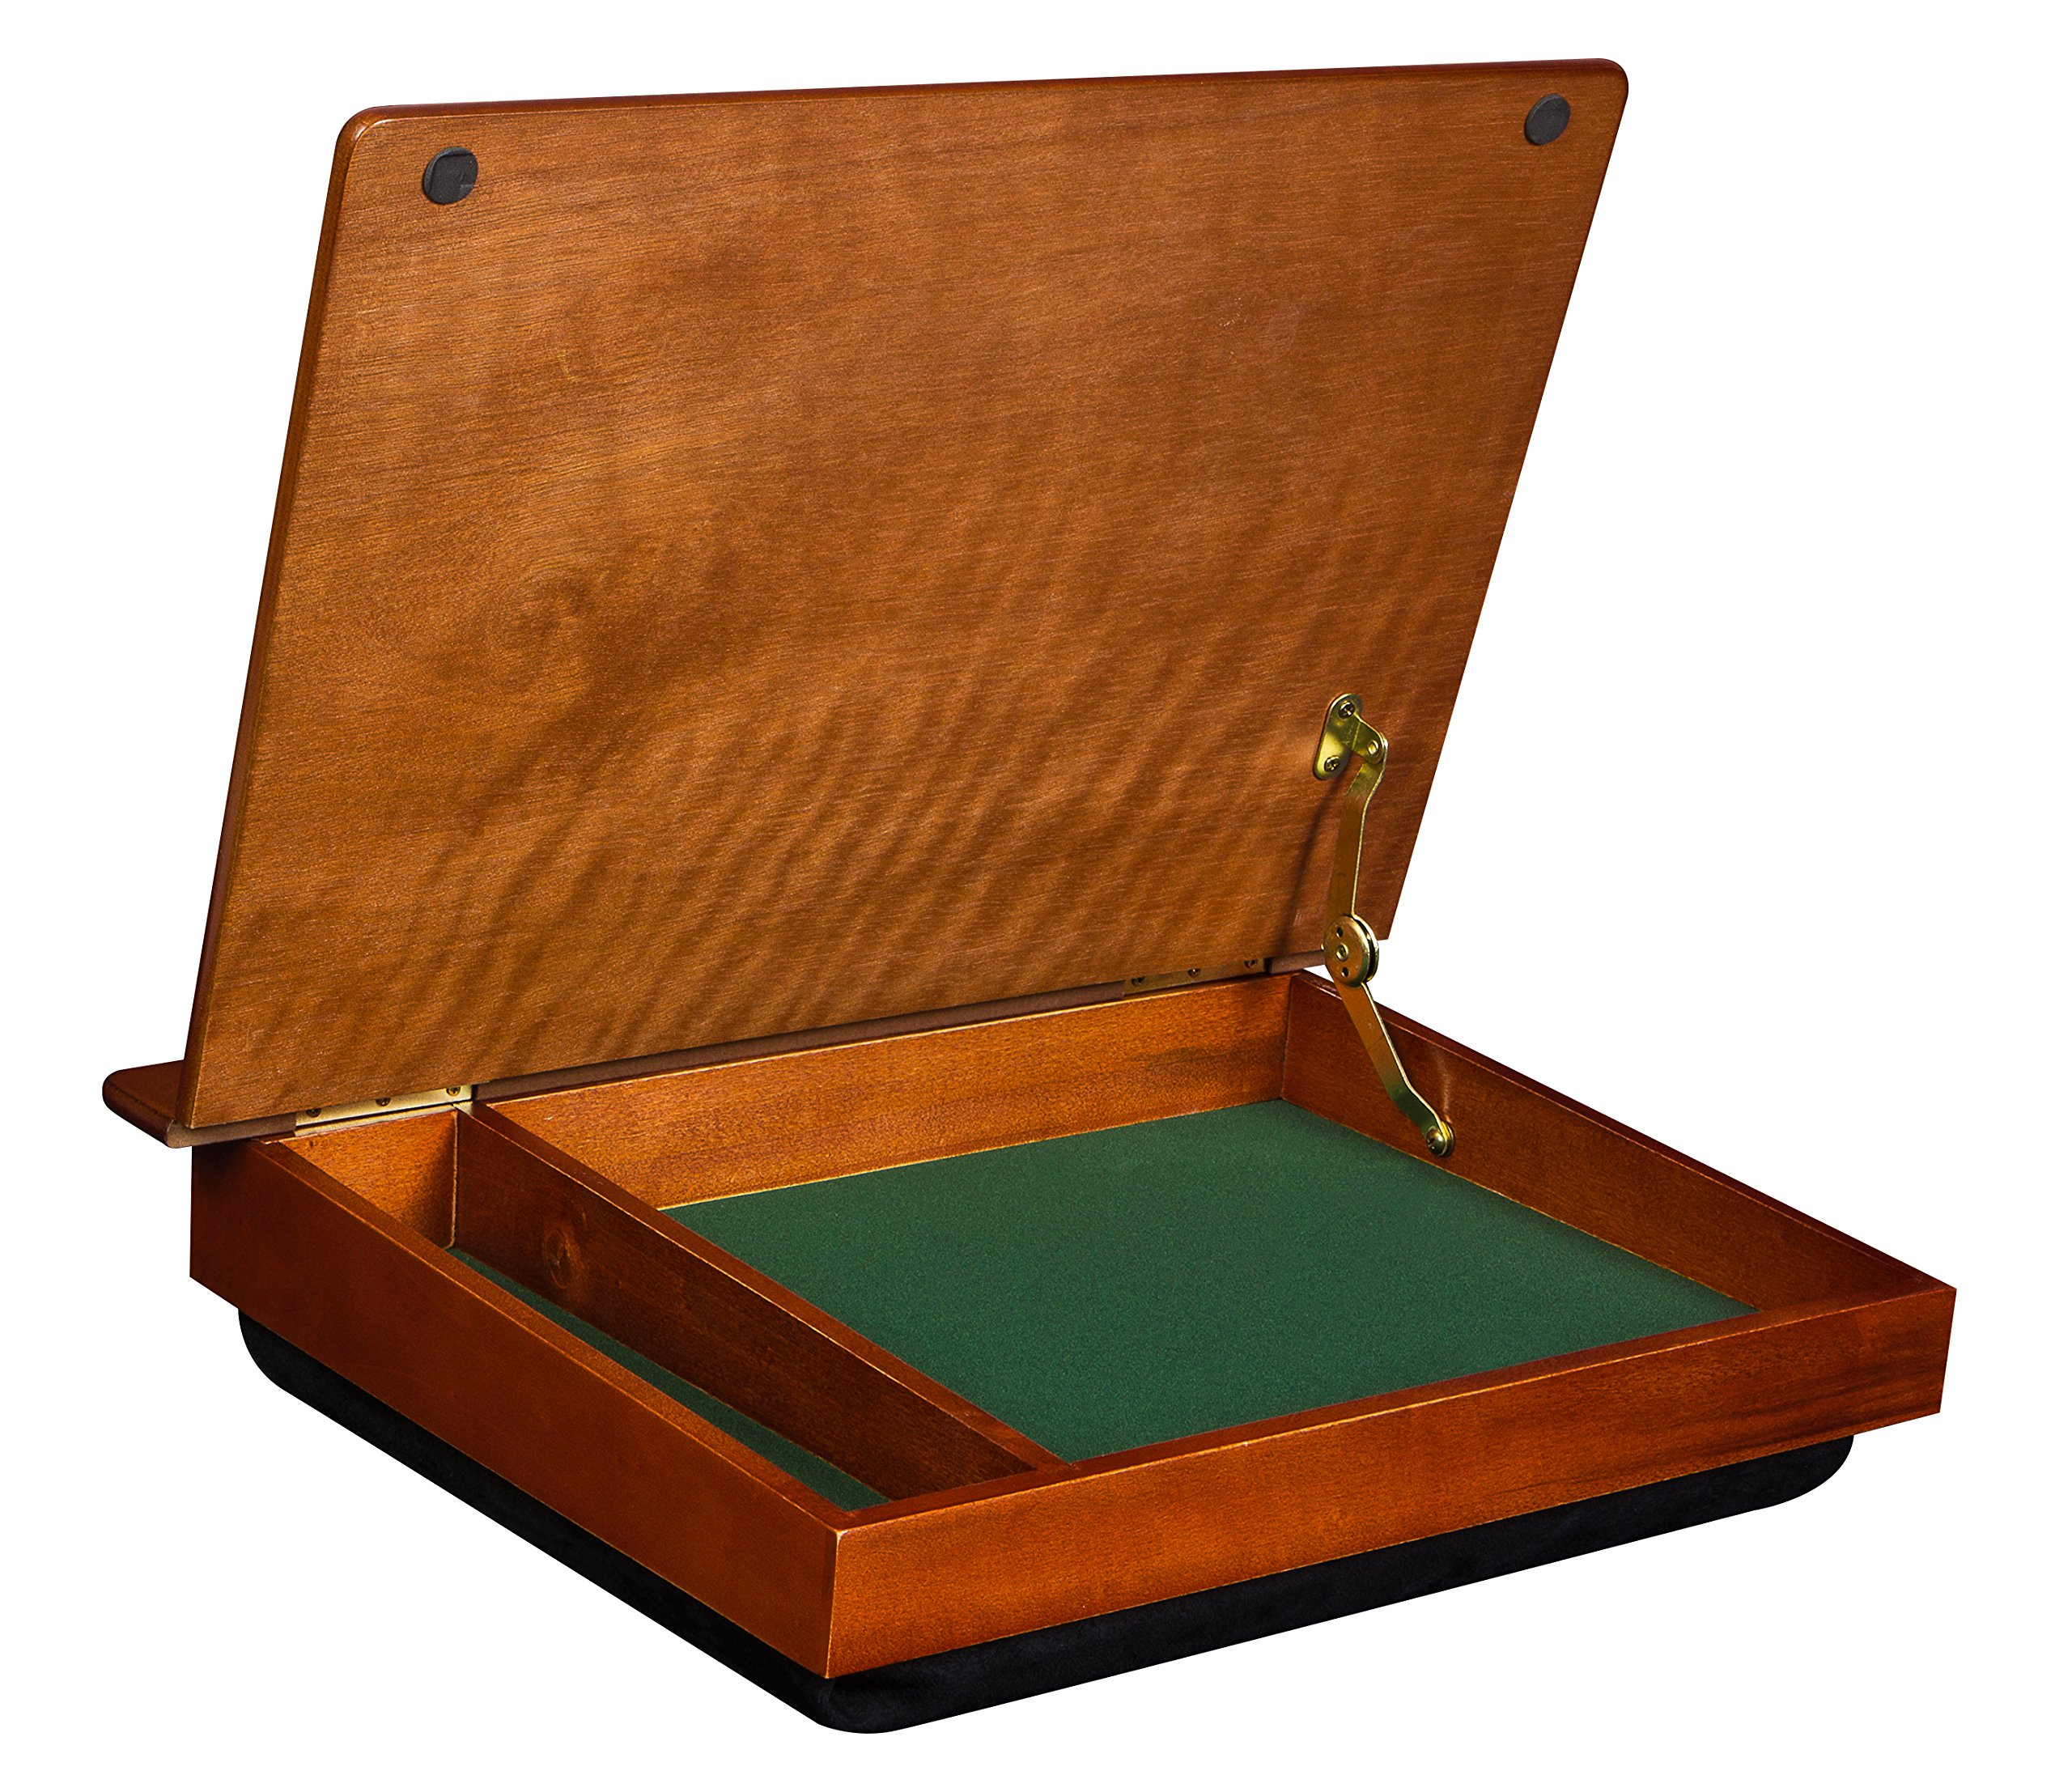 LapDesk Schoolhouse Wood LapDesk with storage (45075) by LapGear